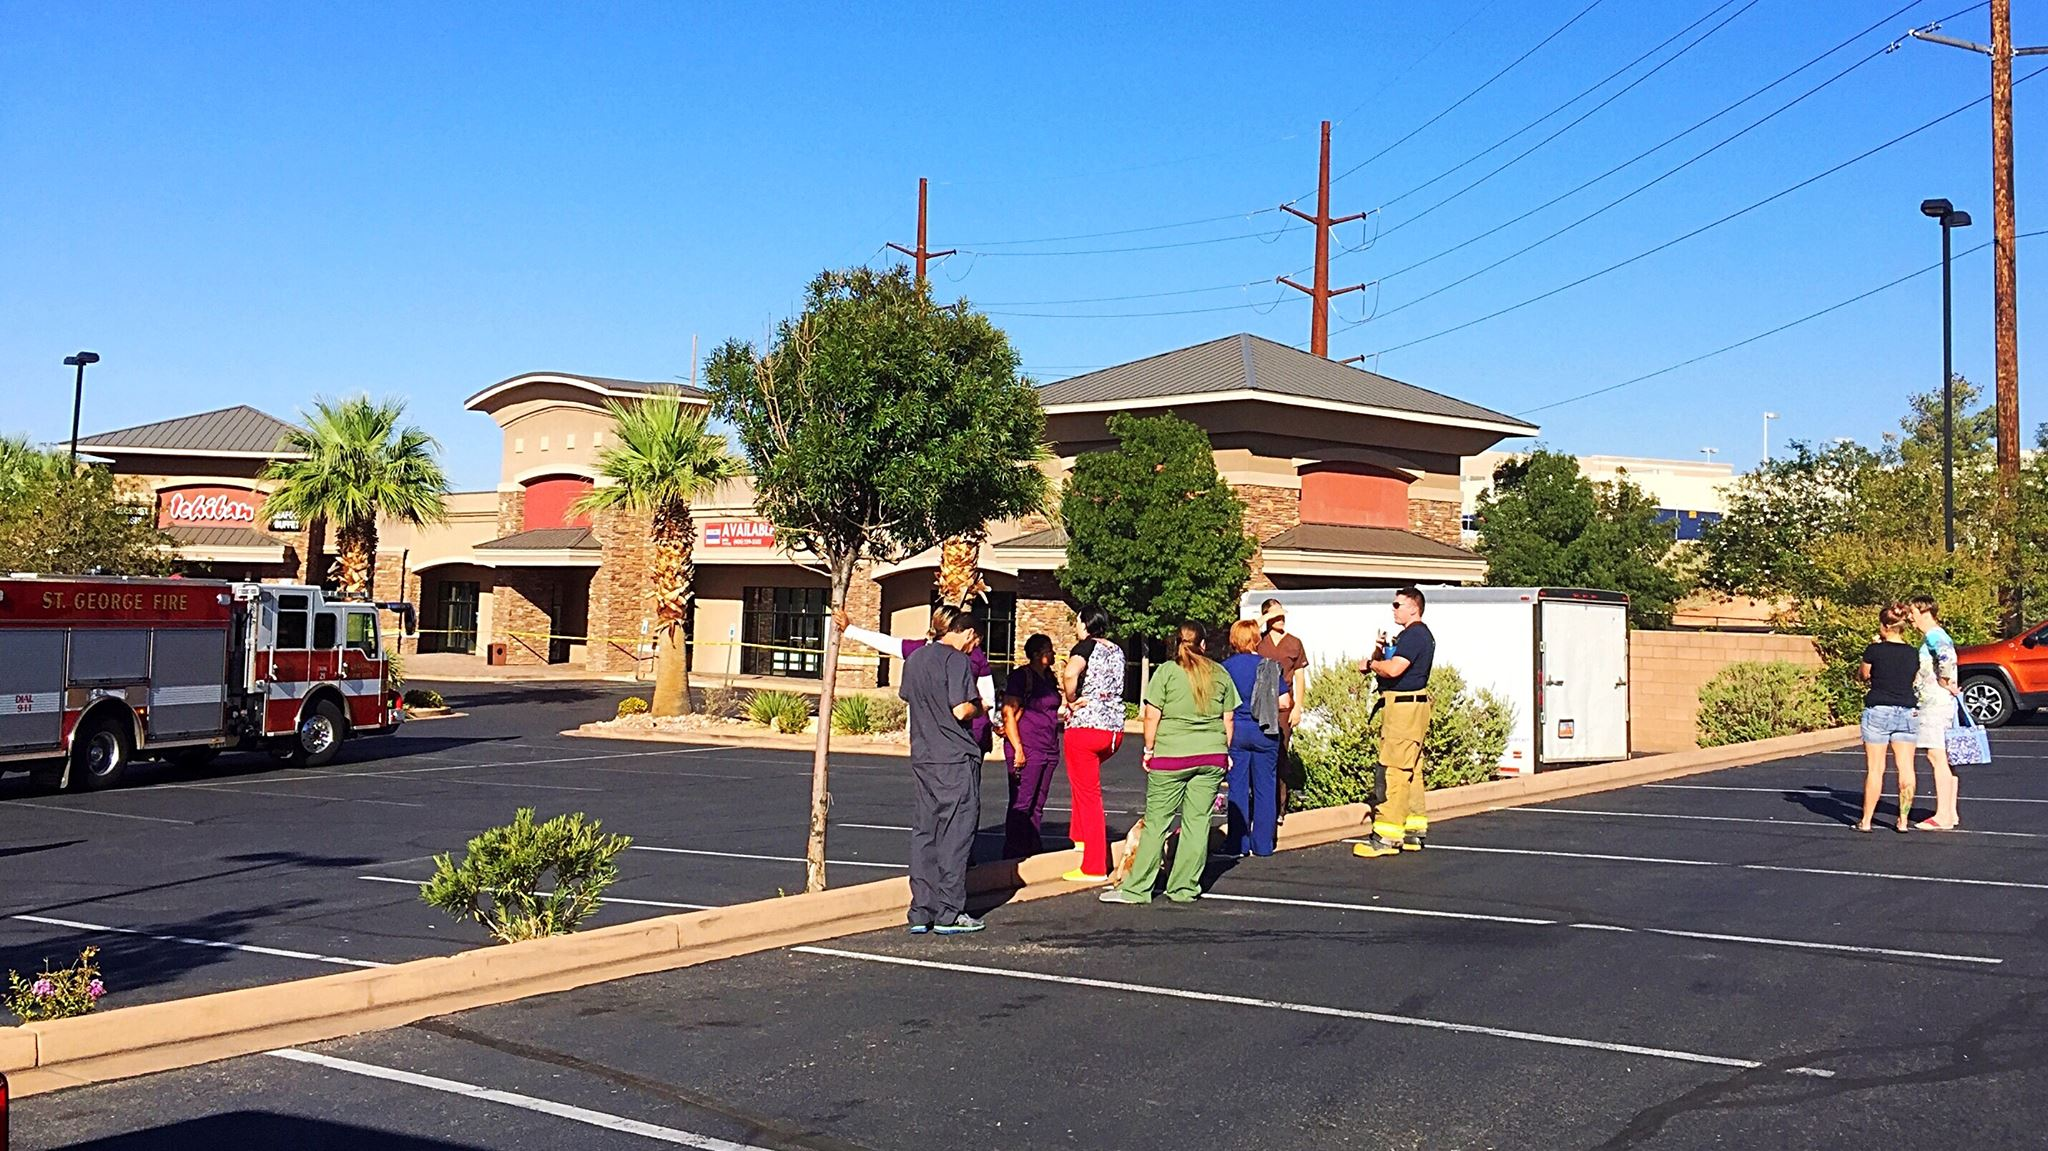 A St. George business plaza located at 969 N. 3050 East was evacuated after an explosive level of gas had accumulated in one of the businesses within the complex, St. George, Utah, Sept. 6, 2016 | Photo by Kimberly Scott, St. George News